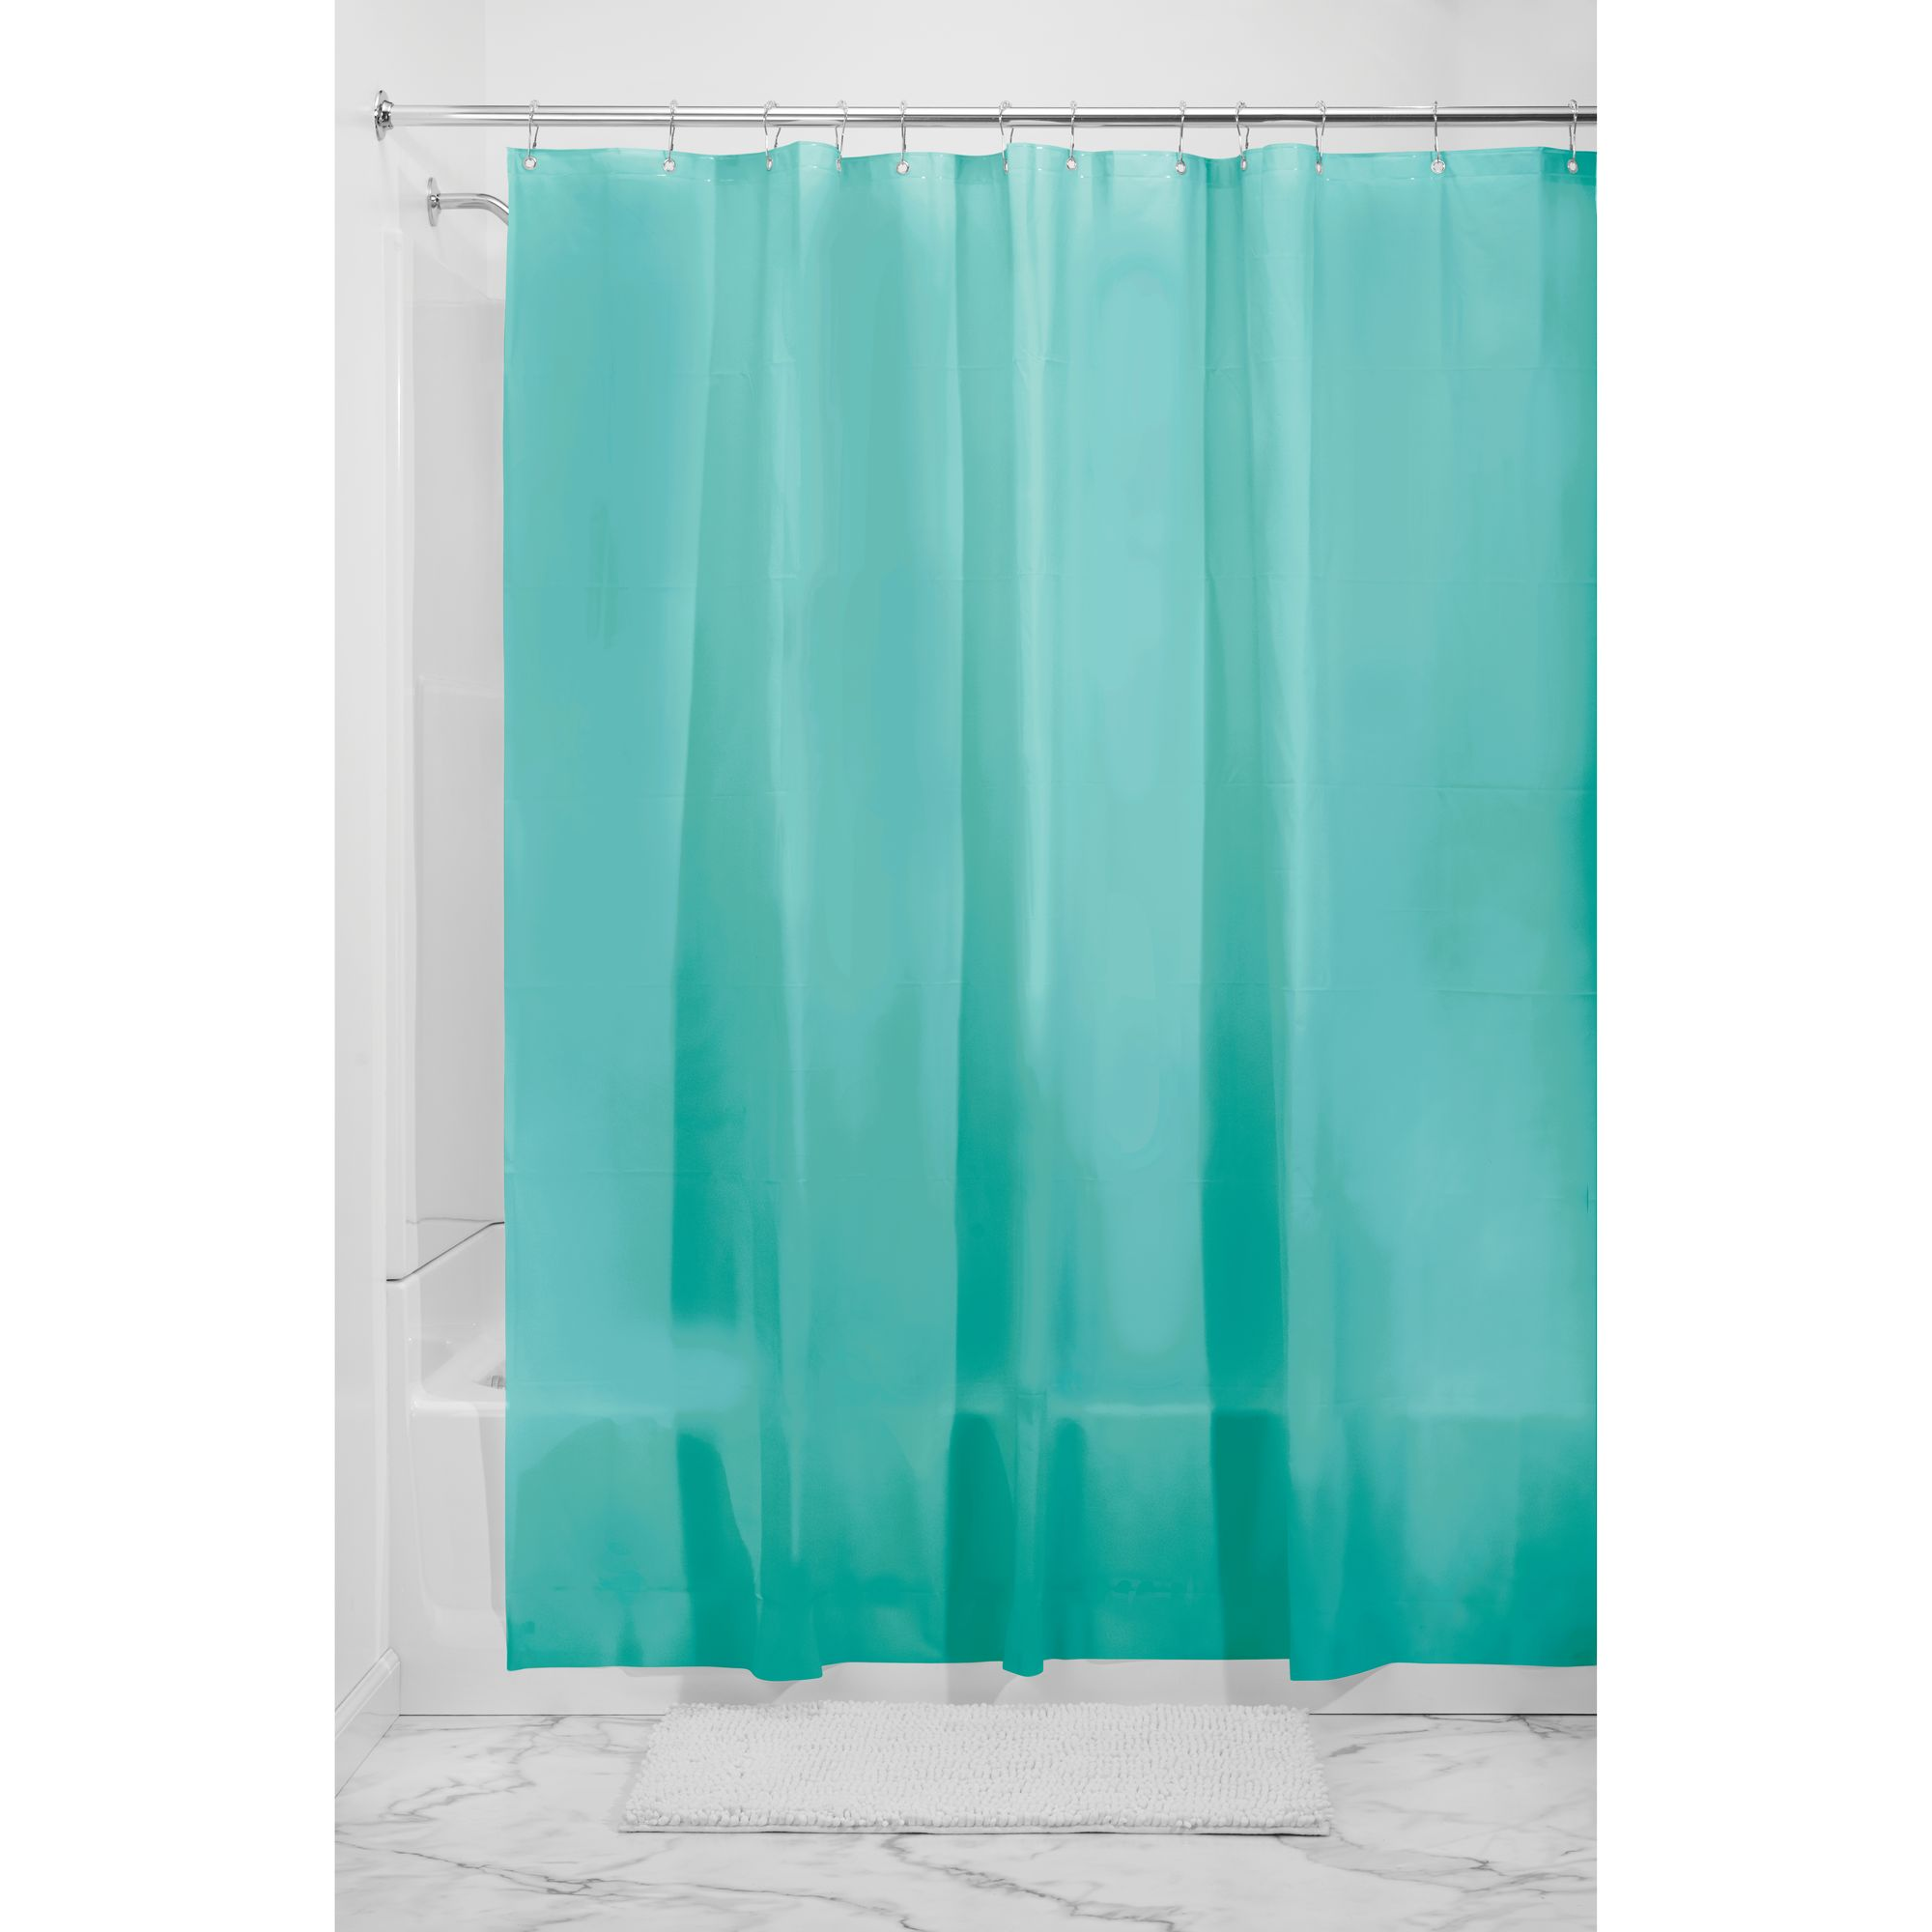 "InterDesign EVA 5.5 Gauge Shower Curtain Liner, Standard, 72"" x 72"", Clear"